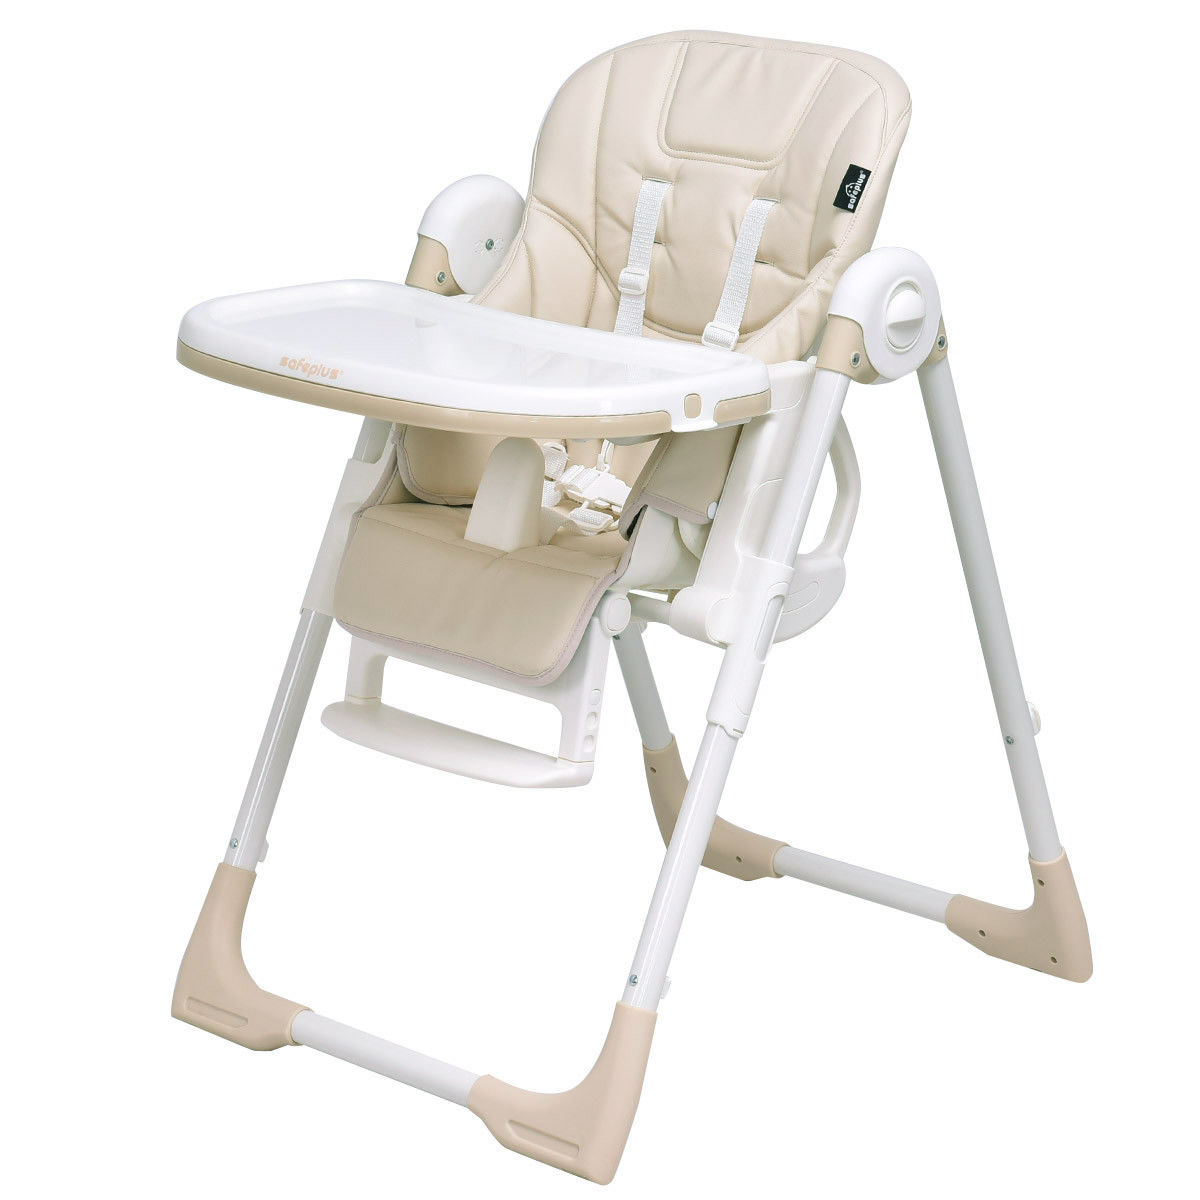 Safeplus Baby High Chair Infant Toddler Feeding Booster Folding Height Adjustable Recline by Costway